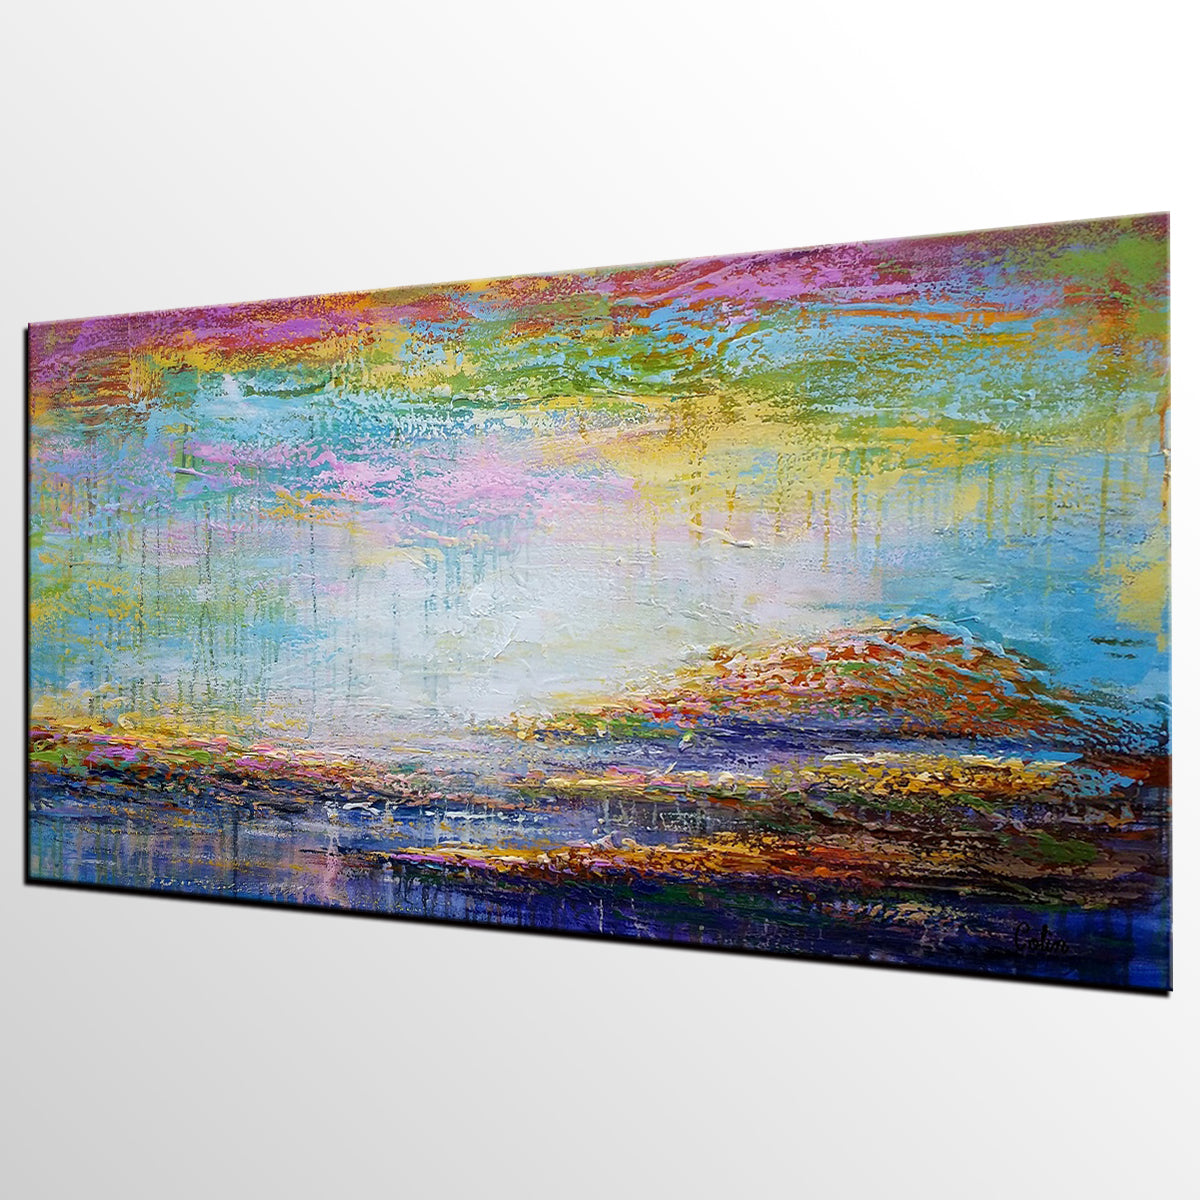 Large Wall Art, Original Painting, Landscape Painting, Large Art, Canvas Art, Wall Art, Original Artwork, Canvas Painting, Modern Art, Acrylic Painting 134